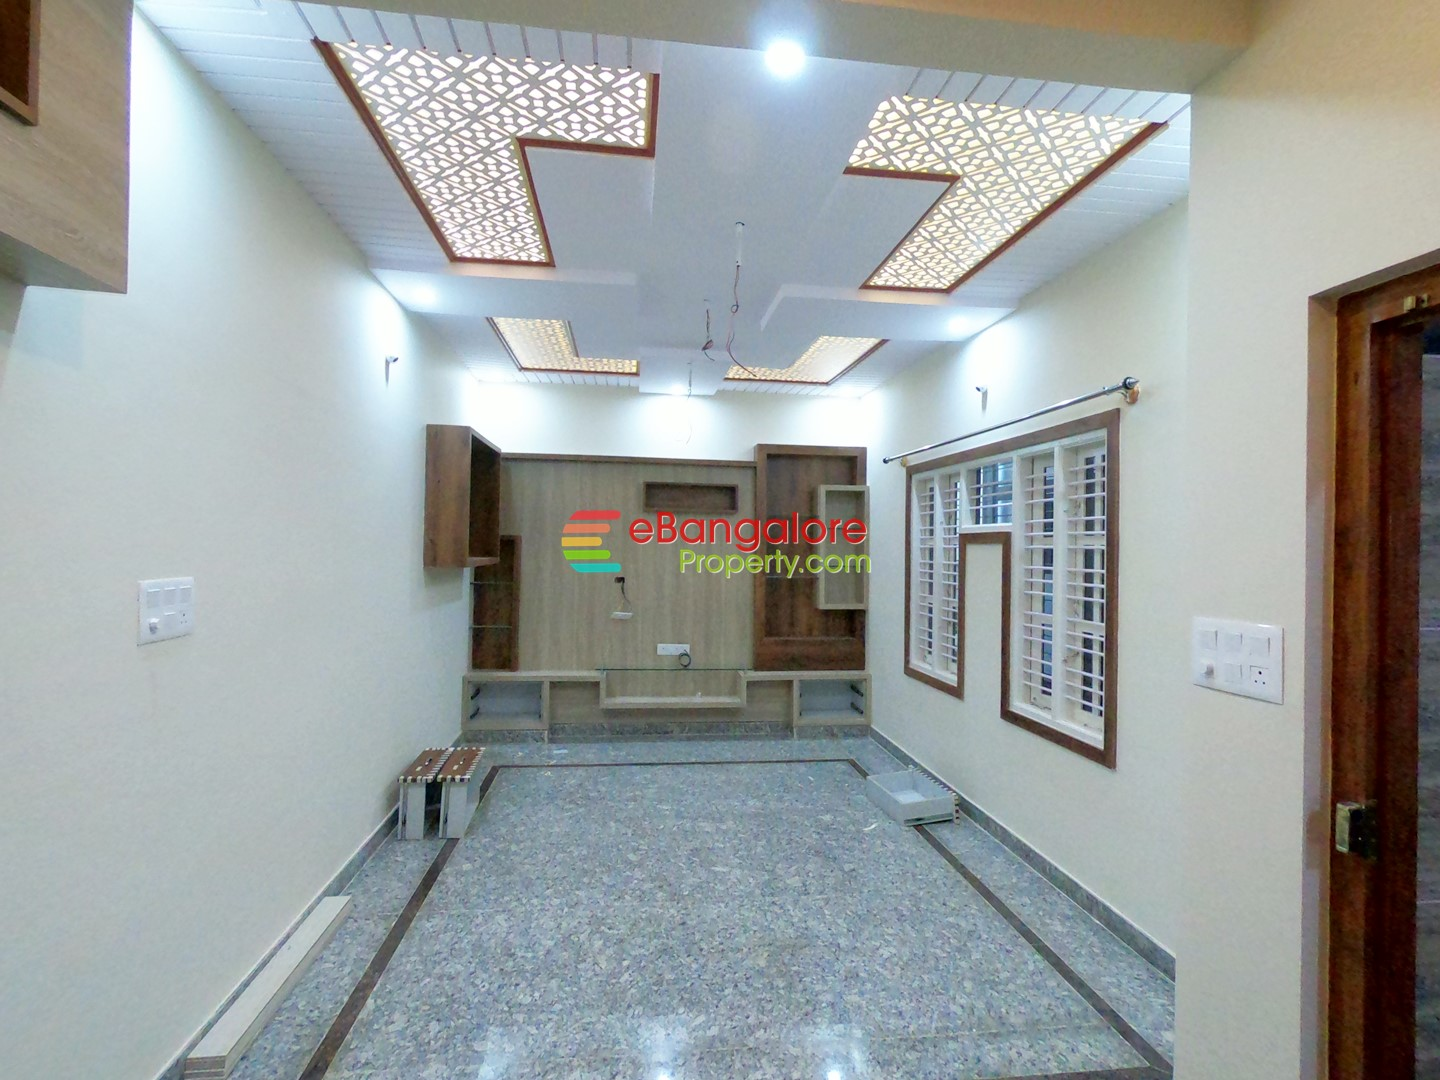 Kalkere Ext E Khata – 3BHK+2BHK Independent House For Sale on 25×40 – Semifurnished